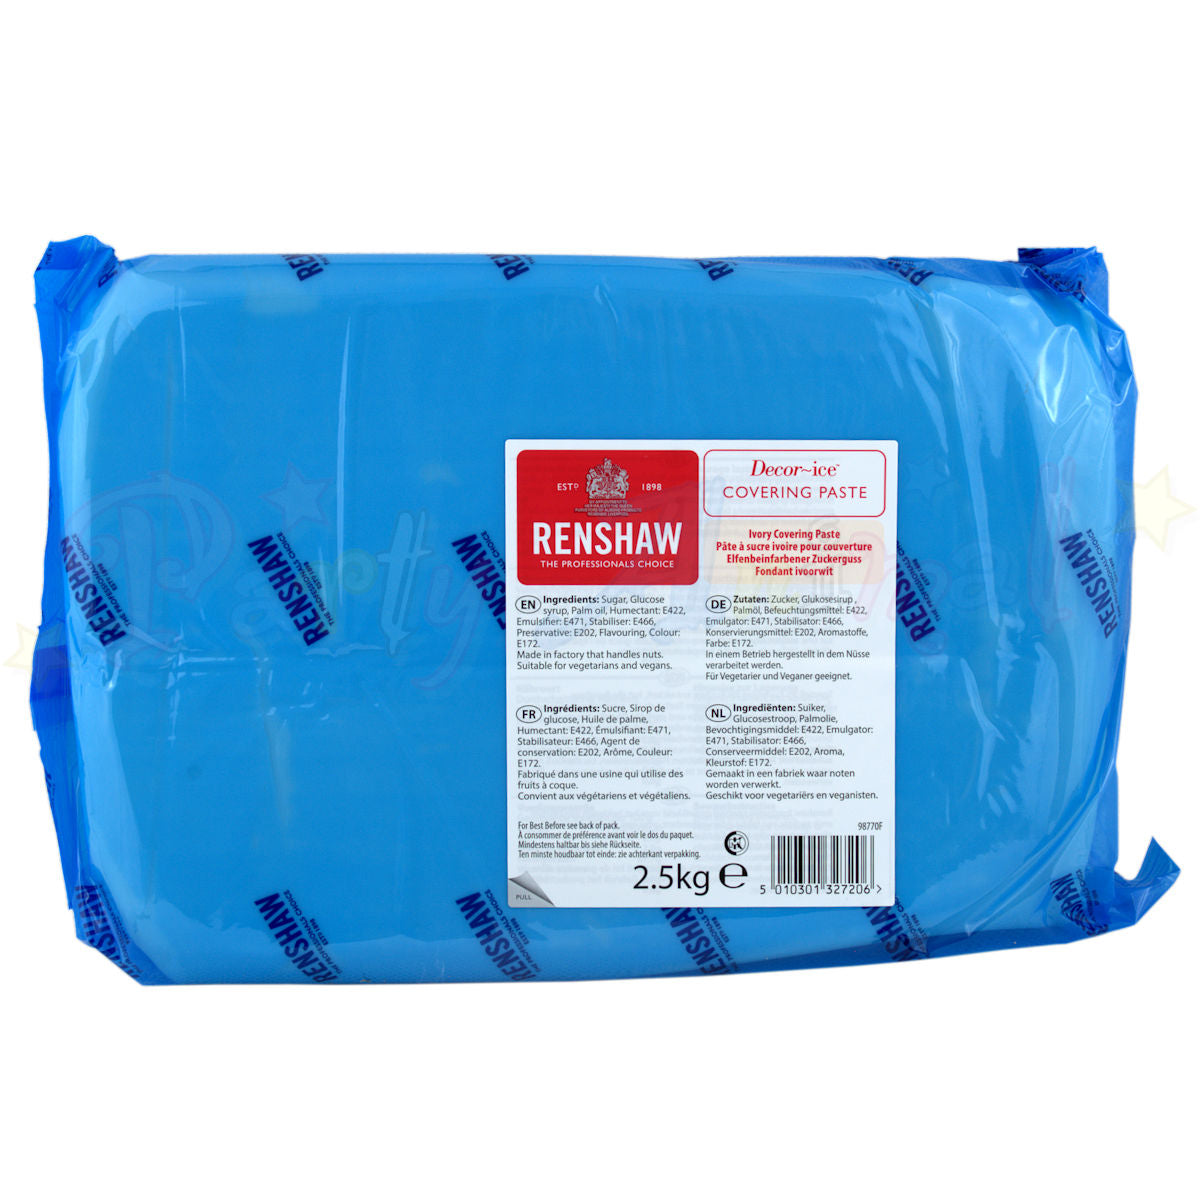 Renshaws Covering Paste - Ivory - 2.5Kg